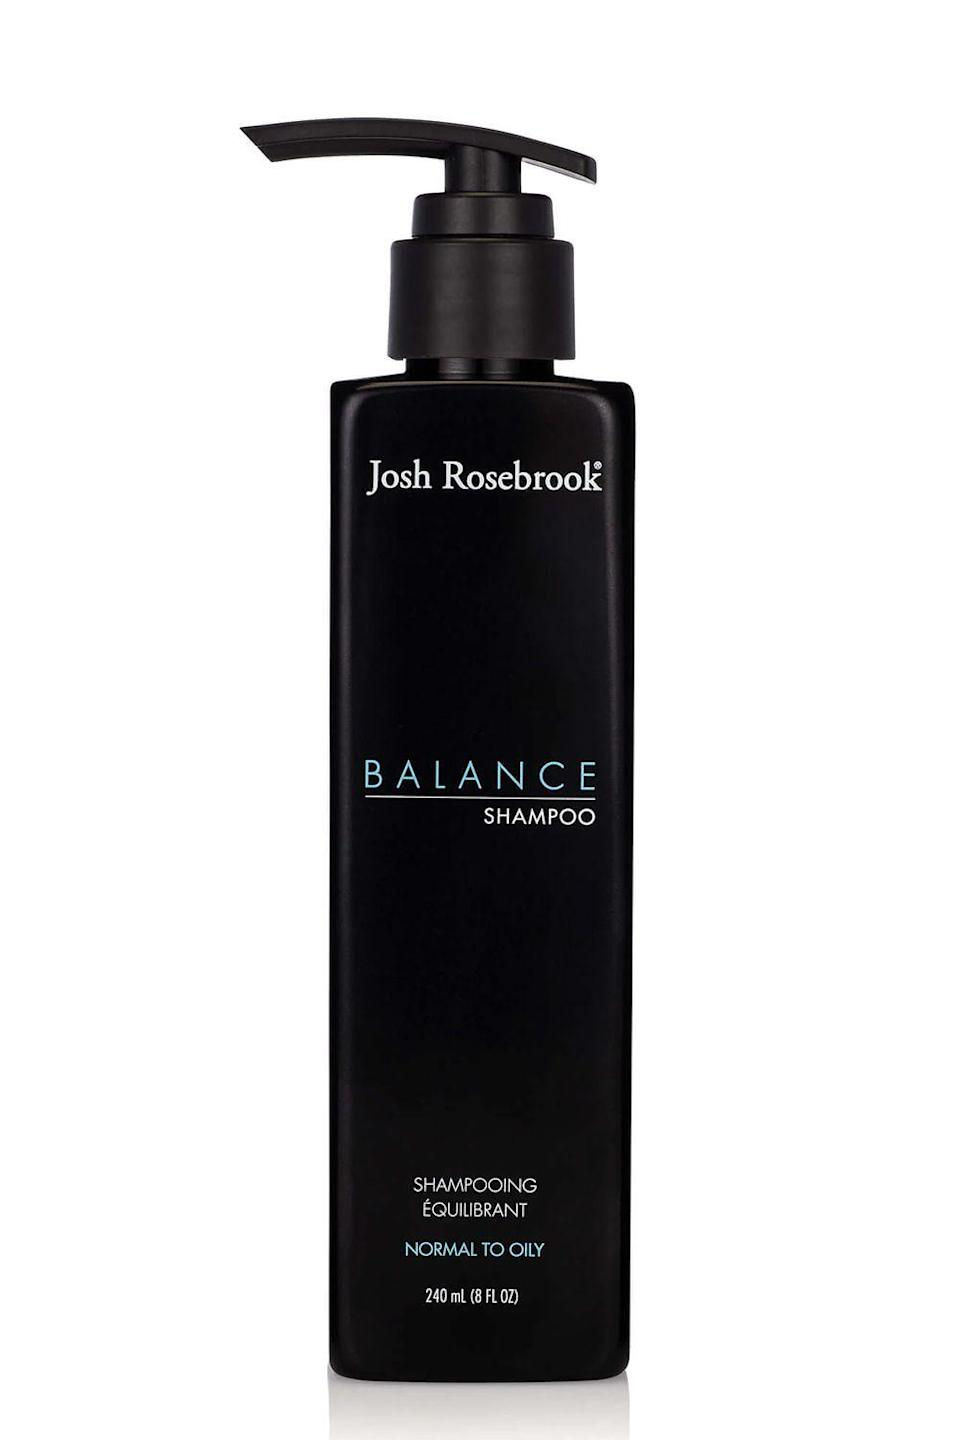 "<p><strong>Josh Rosebrook</strong></p><p>credobeauty.com</p><p><strong>$33.00</strong></p><p><a href=""https://go.redirectingat.com?id=74968X1596630&url=https%3A%2F%2Fcredobeauty.com%2Fproducts%2Fjosh-rosebrook-balance-shampoo&sref=https%3A%2F%2Fwww.cosmopolitan.com%2Fstyle-beauty%2Fbeauty%2Fg22740377%2Forganic-shampoo%2F"" rel=""nofollow noopener"" target=""_blank"" data-ylk=""slk:Shop Now"" class=""link rapid-noclick-resp"">Shop Now</a></p><p>I have super <a href=""https://www.cosmopolitan.com/style-beauty/beauty/a32393572/oily-hair-coronavirus-stress/"" rel=""nofollow noopener"" target=""_blank"" data-ylk=""slk:oily hair"" class=""link rapid-noclick-resp"">oily hair</a>, and this is truly the only organic shampoo I've found that keeps all my greasiness in check. It uses aloe vera, gentle cleansers, and organic herbs (like nettle, ginseng, and oregano) to <strong>remove buildup and dirt while regulating your scalp's oil production</strong>. The result is healthy hair and a balanced scalp.</p>"